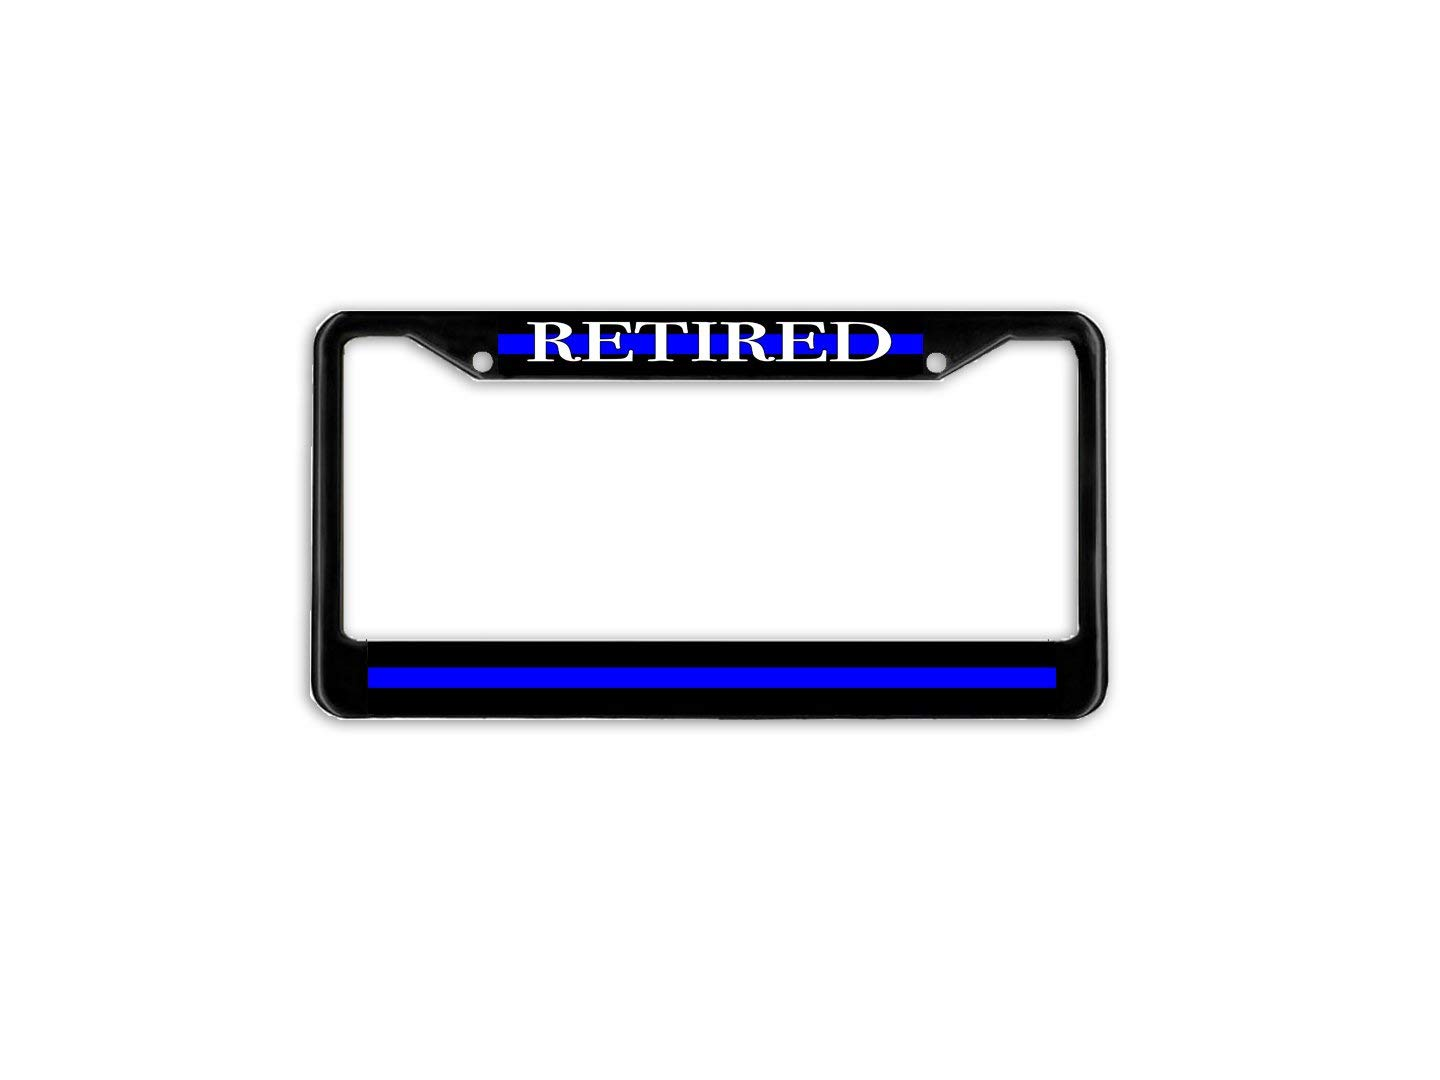 LOHIGHH Retired Thin Blue Line Police Support Blue Lives License Plate Frame Holder Black